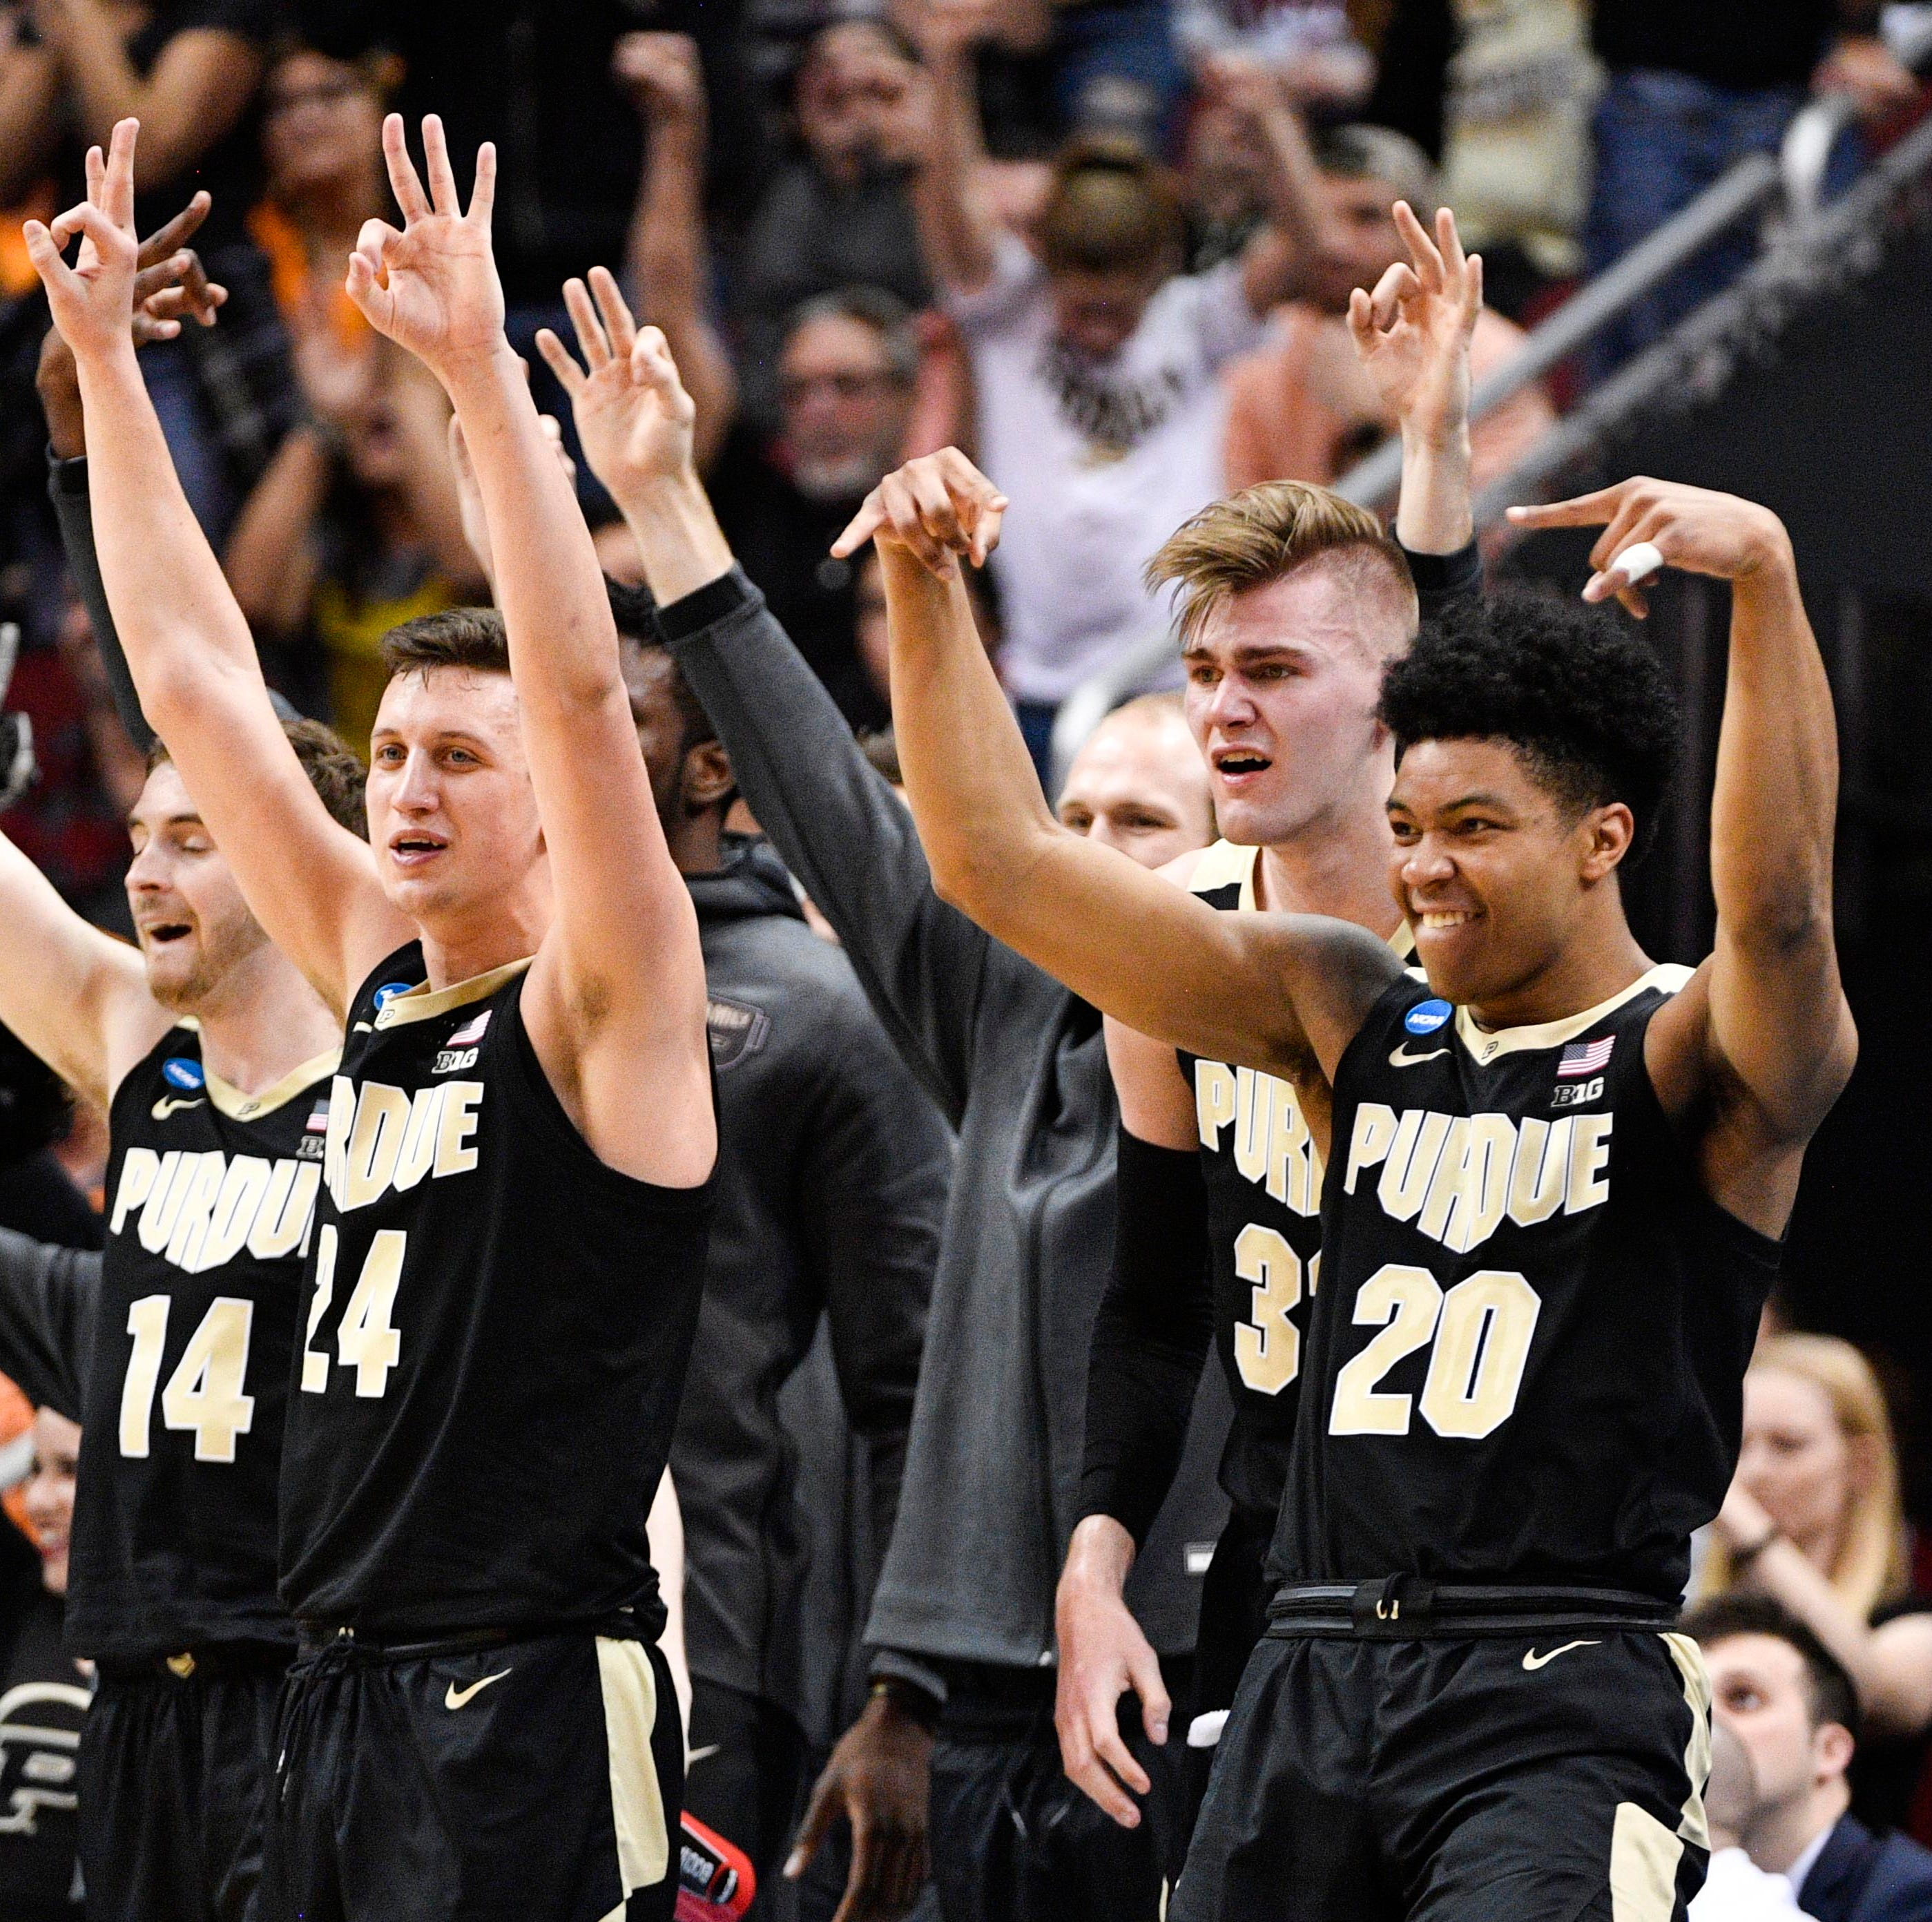 Scouting Purdue basketball vs. Virginia in the Elite 8 of the NCAA Tournament